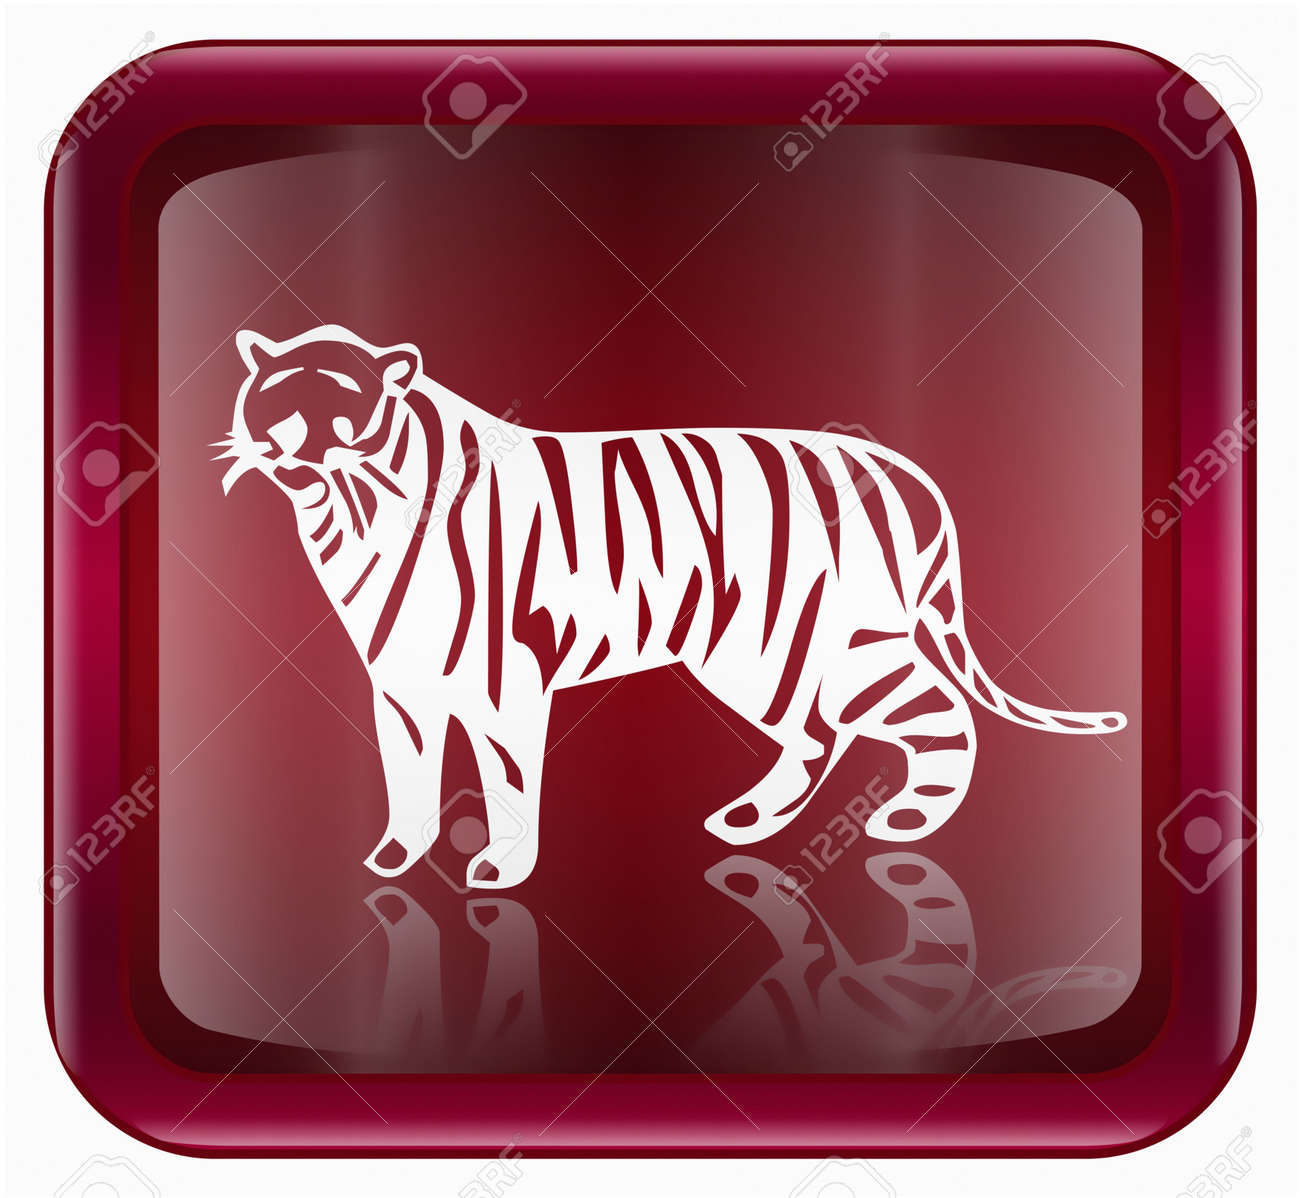 Tiger Zodiac icon red, isolated on white background. Stock Photo - 2282615